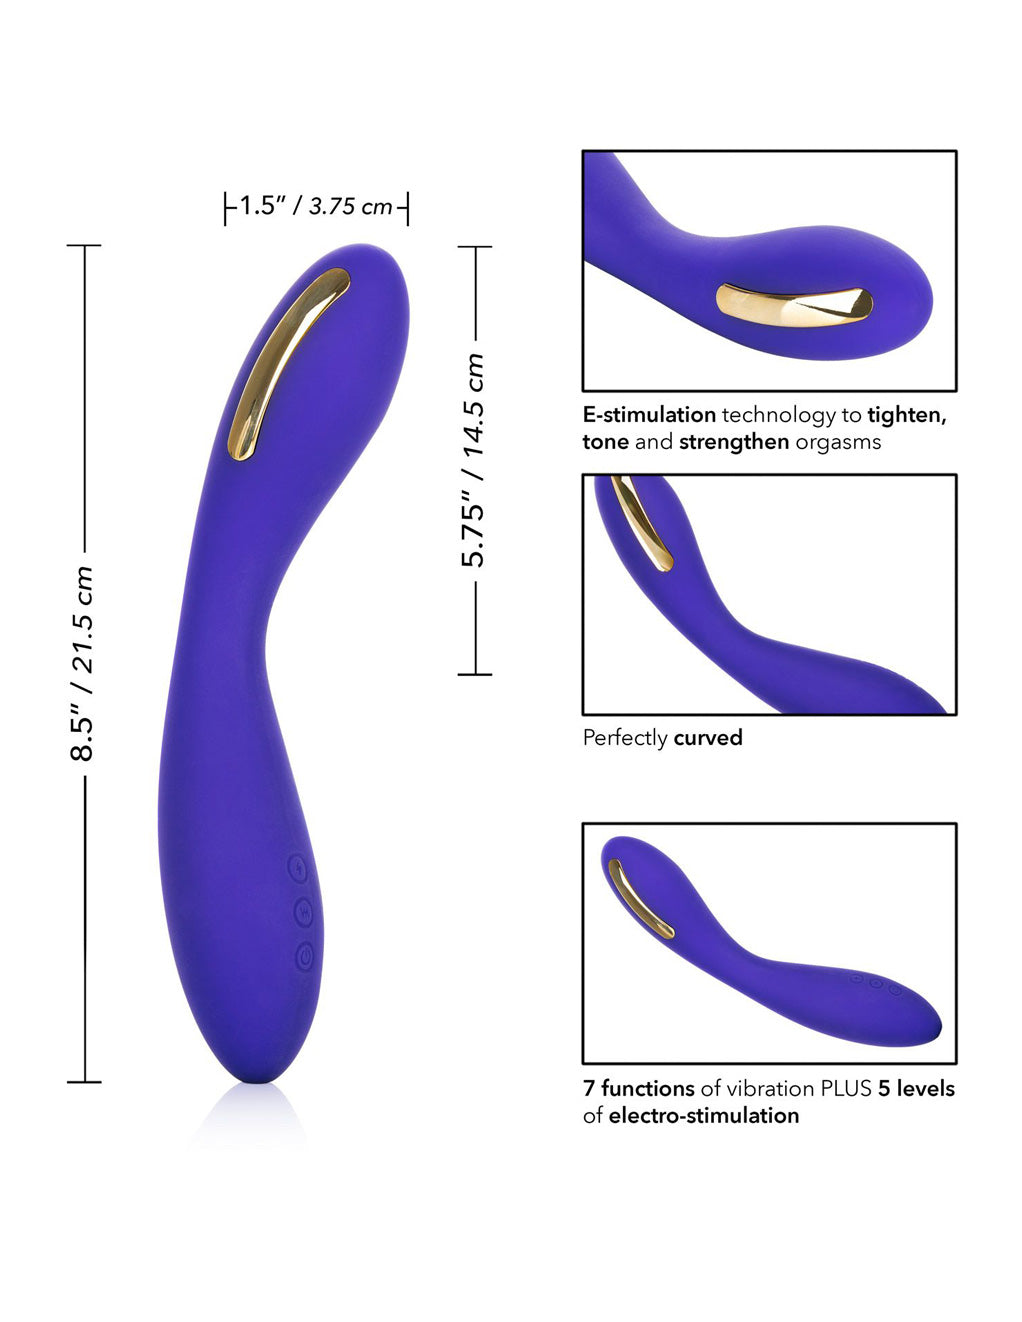 Impulse Intimate E Stim Wand by California Exotics Measurements